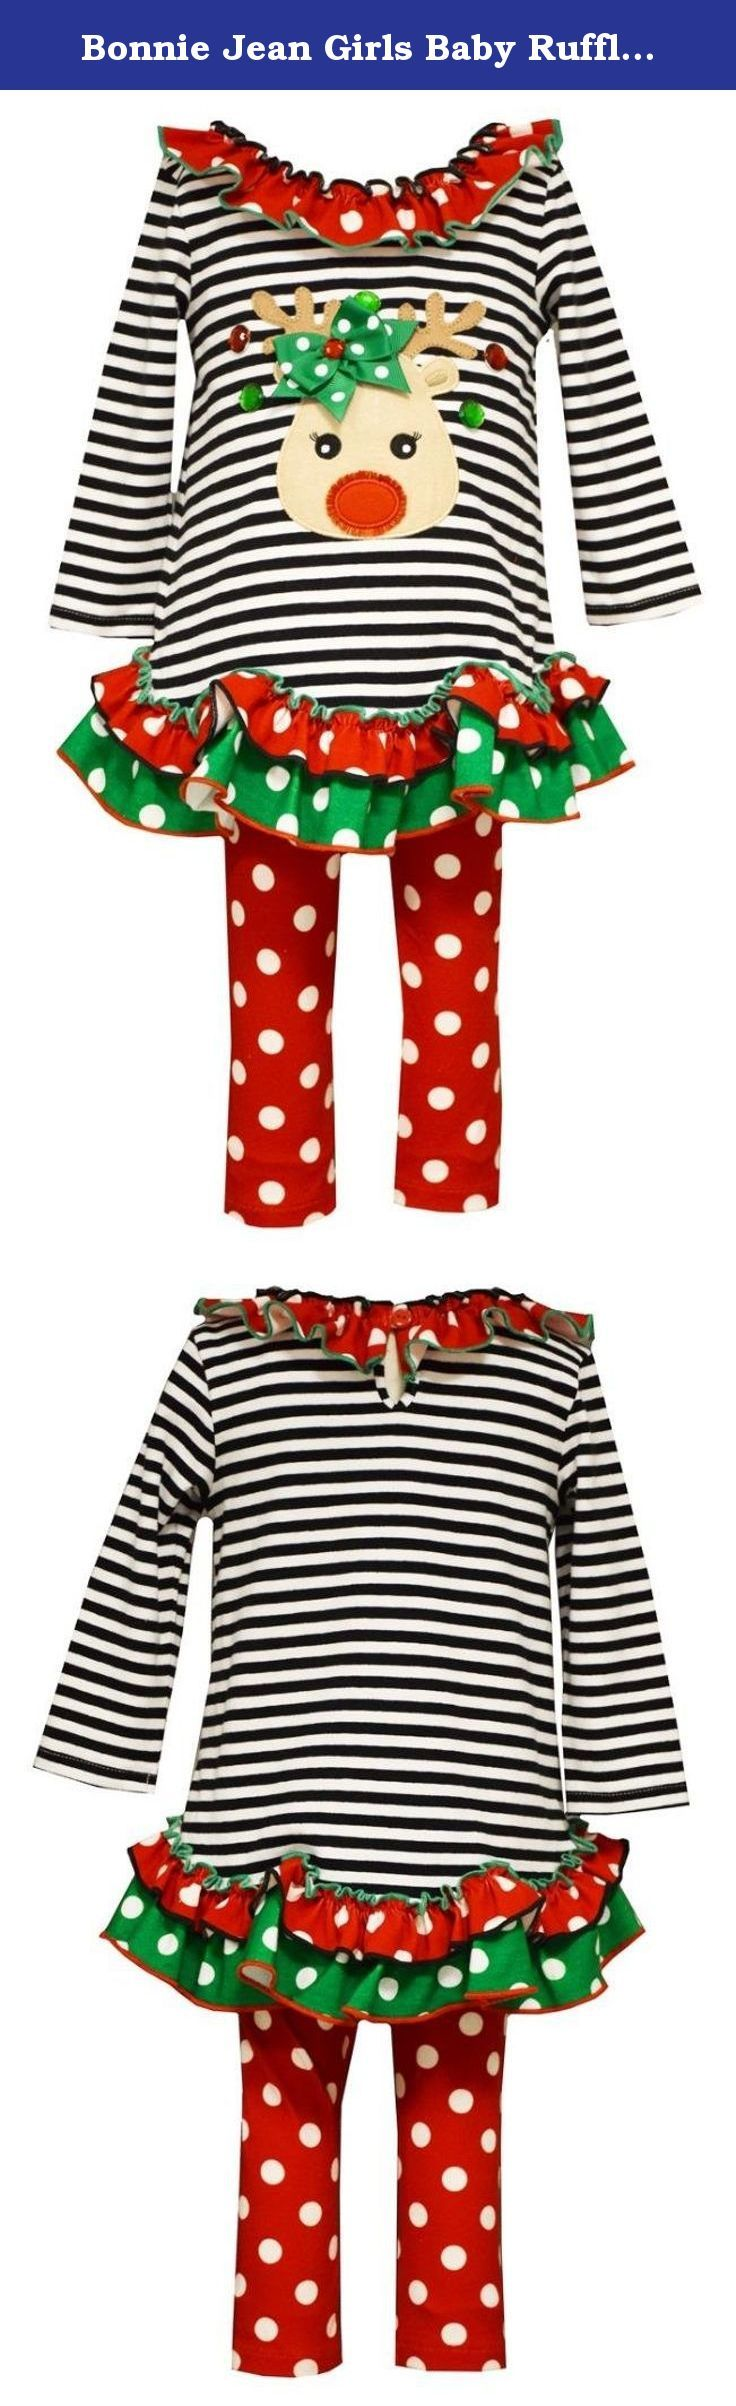 Bonnie Jean Girls Baby Ruffled Top with Leggings Reindeer Applique. Introducing Rudolphina, the newest red nosed, and green bowed, reindeer. She comes attached to an adorable black and white striped knit dress with a red polka dot ruffled neck and red and green polka dot hem, and red polka dot pants. Simple, cute, and fun, this dress from Bonnie Jean is sure to be a favorite.